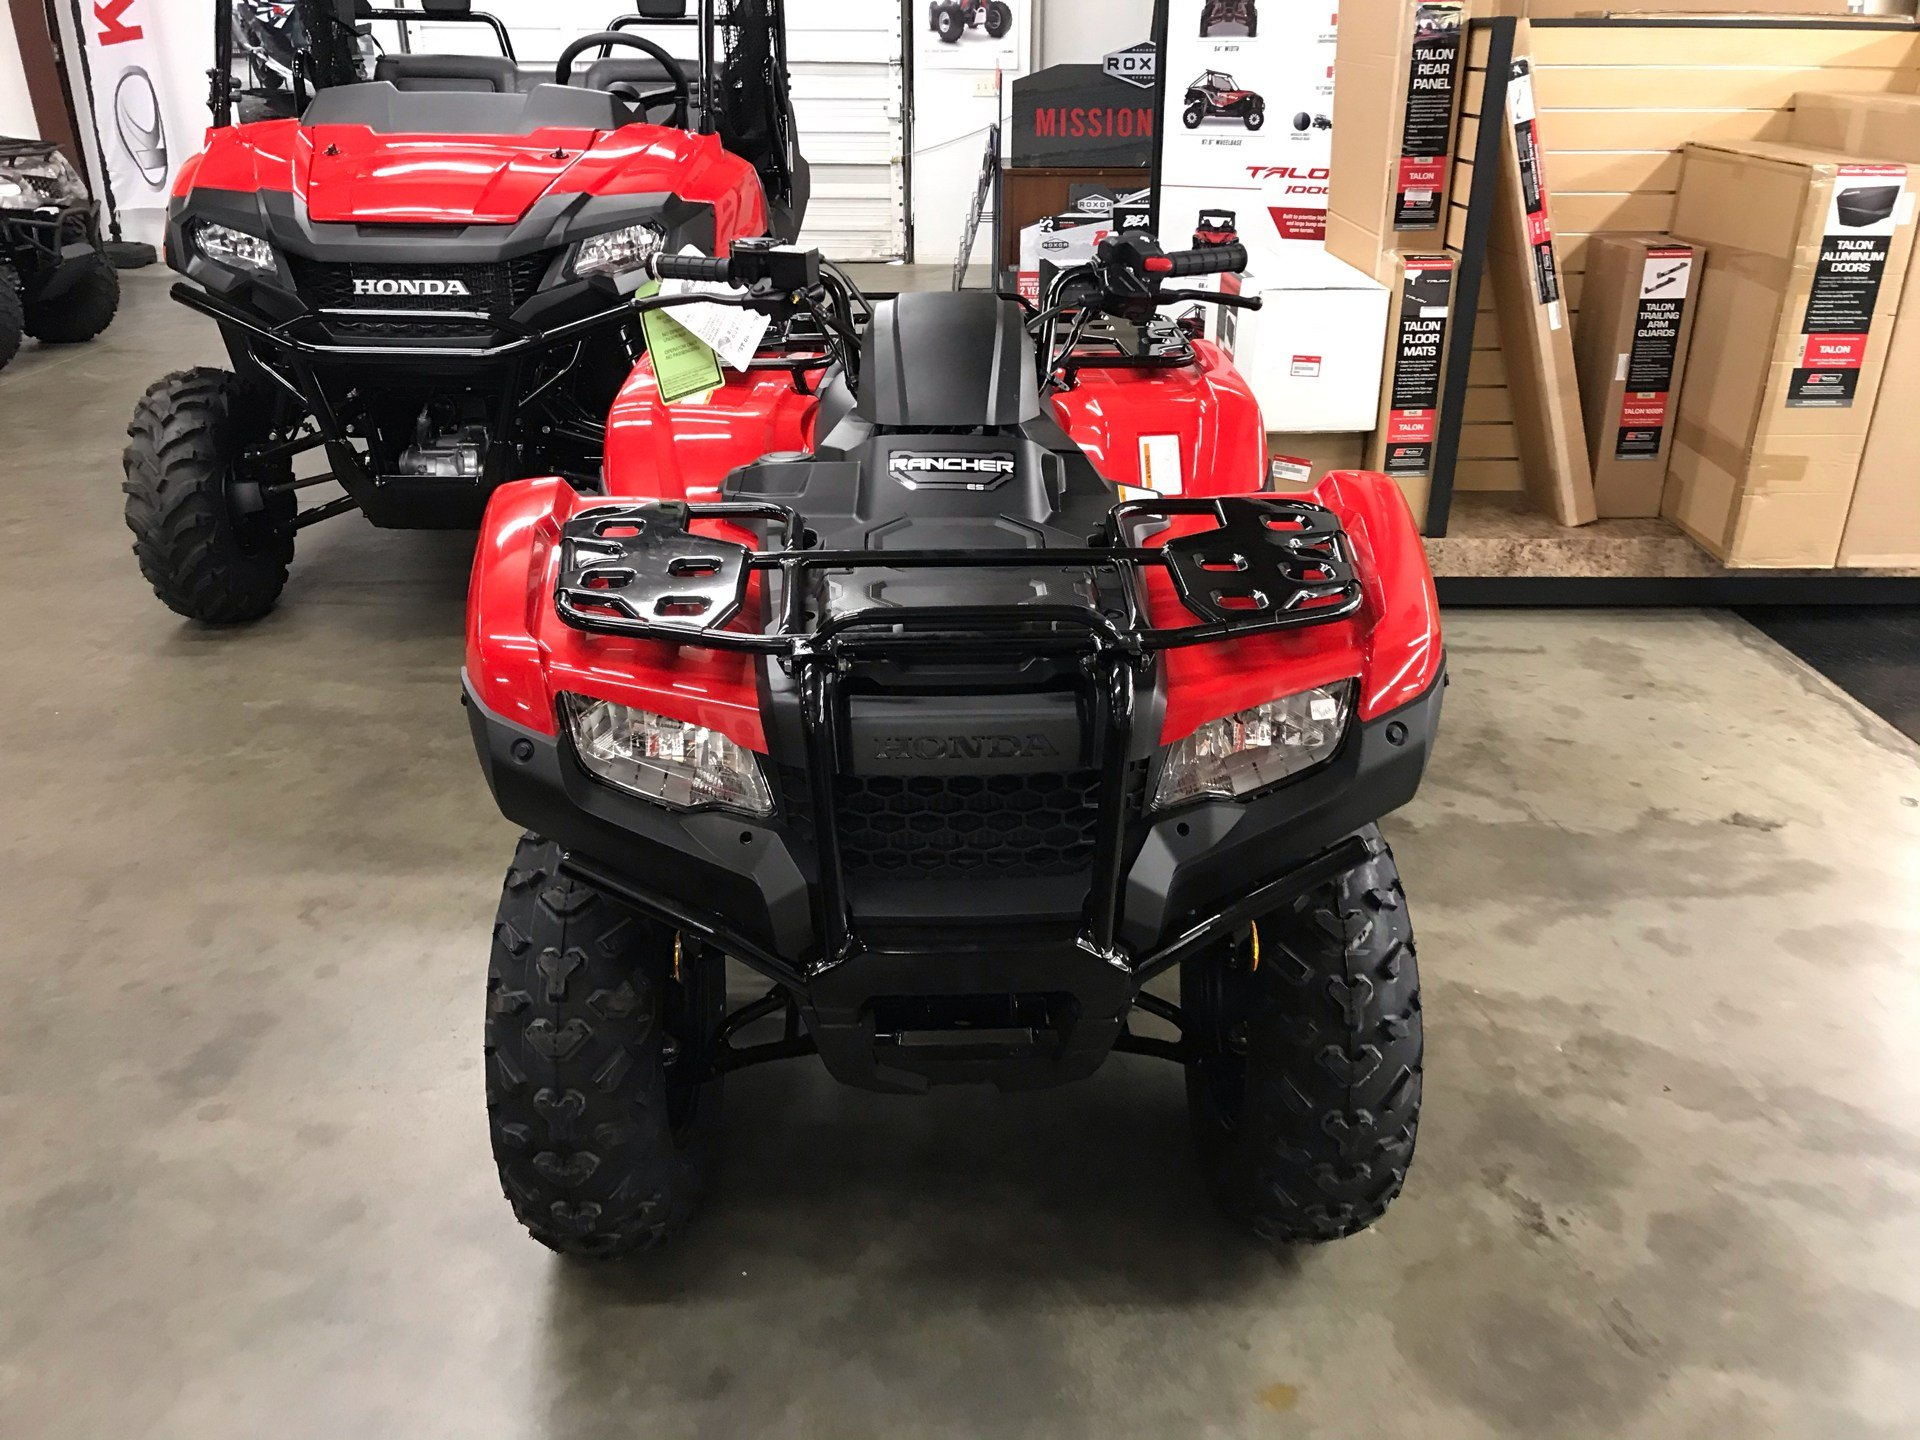 2020 Honda FourTrax Rancher ES in Sanford, North Carolina - Photo 3